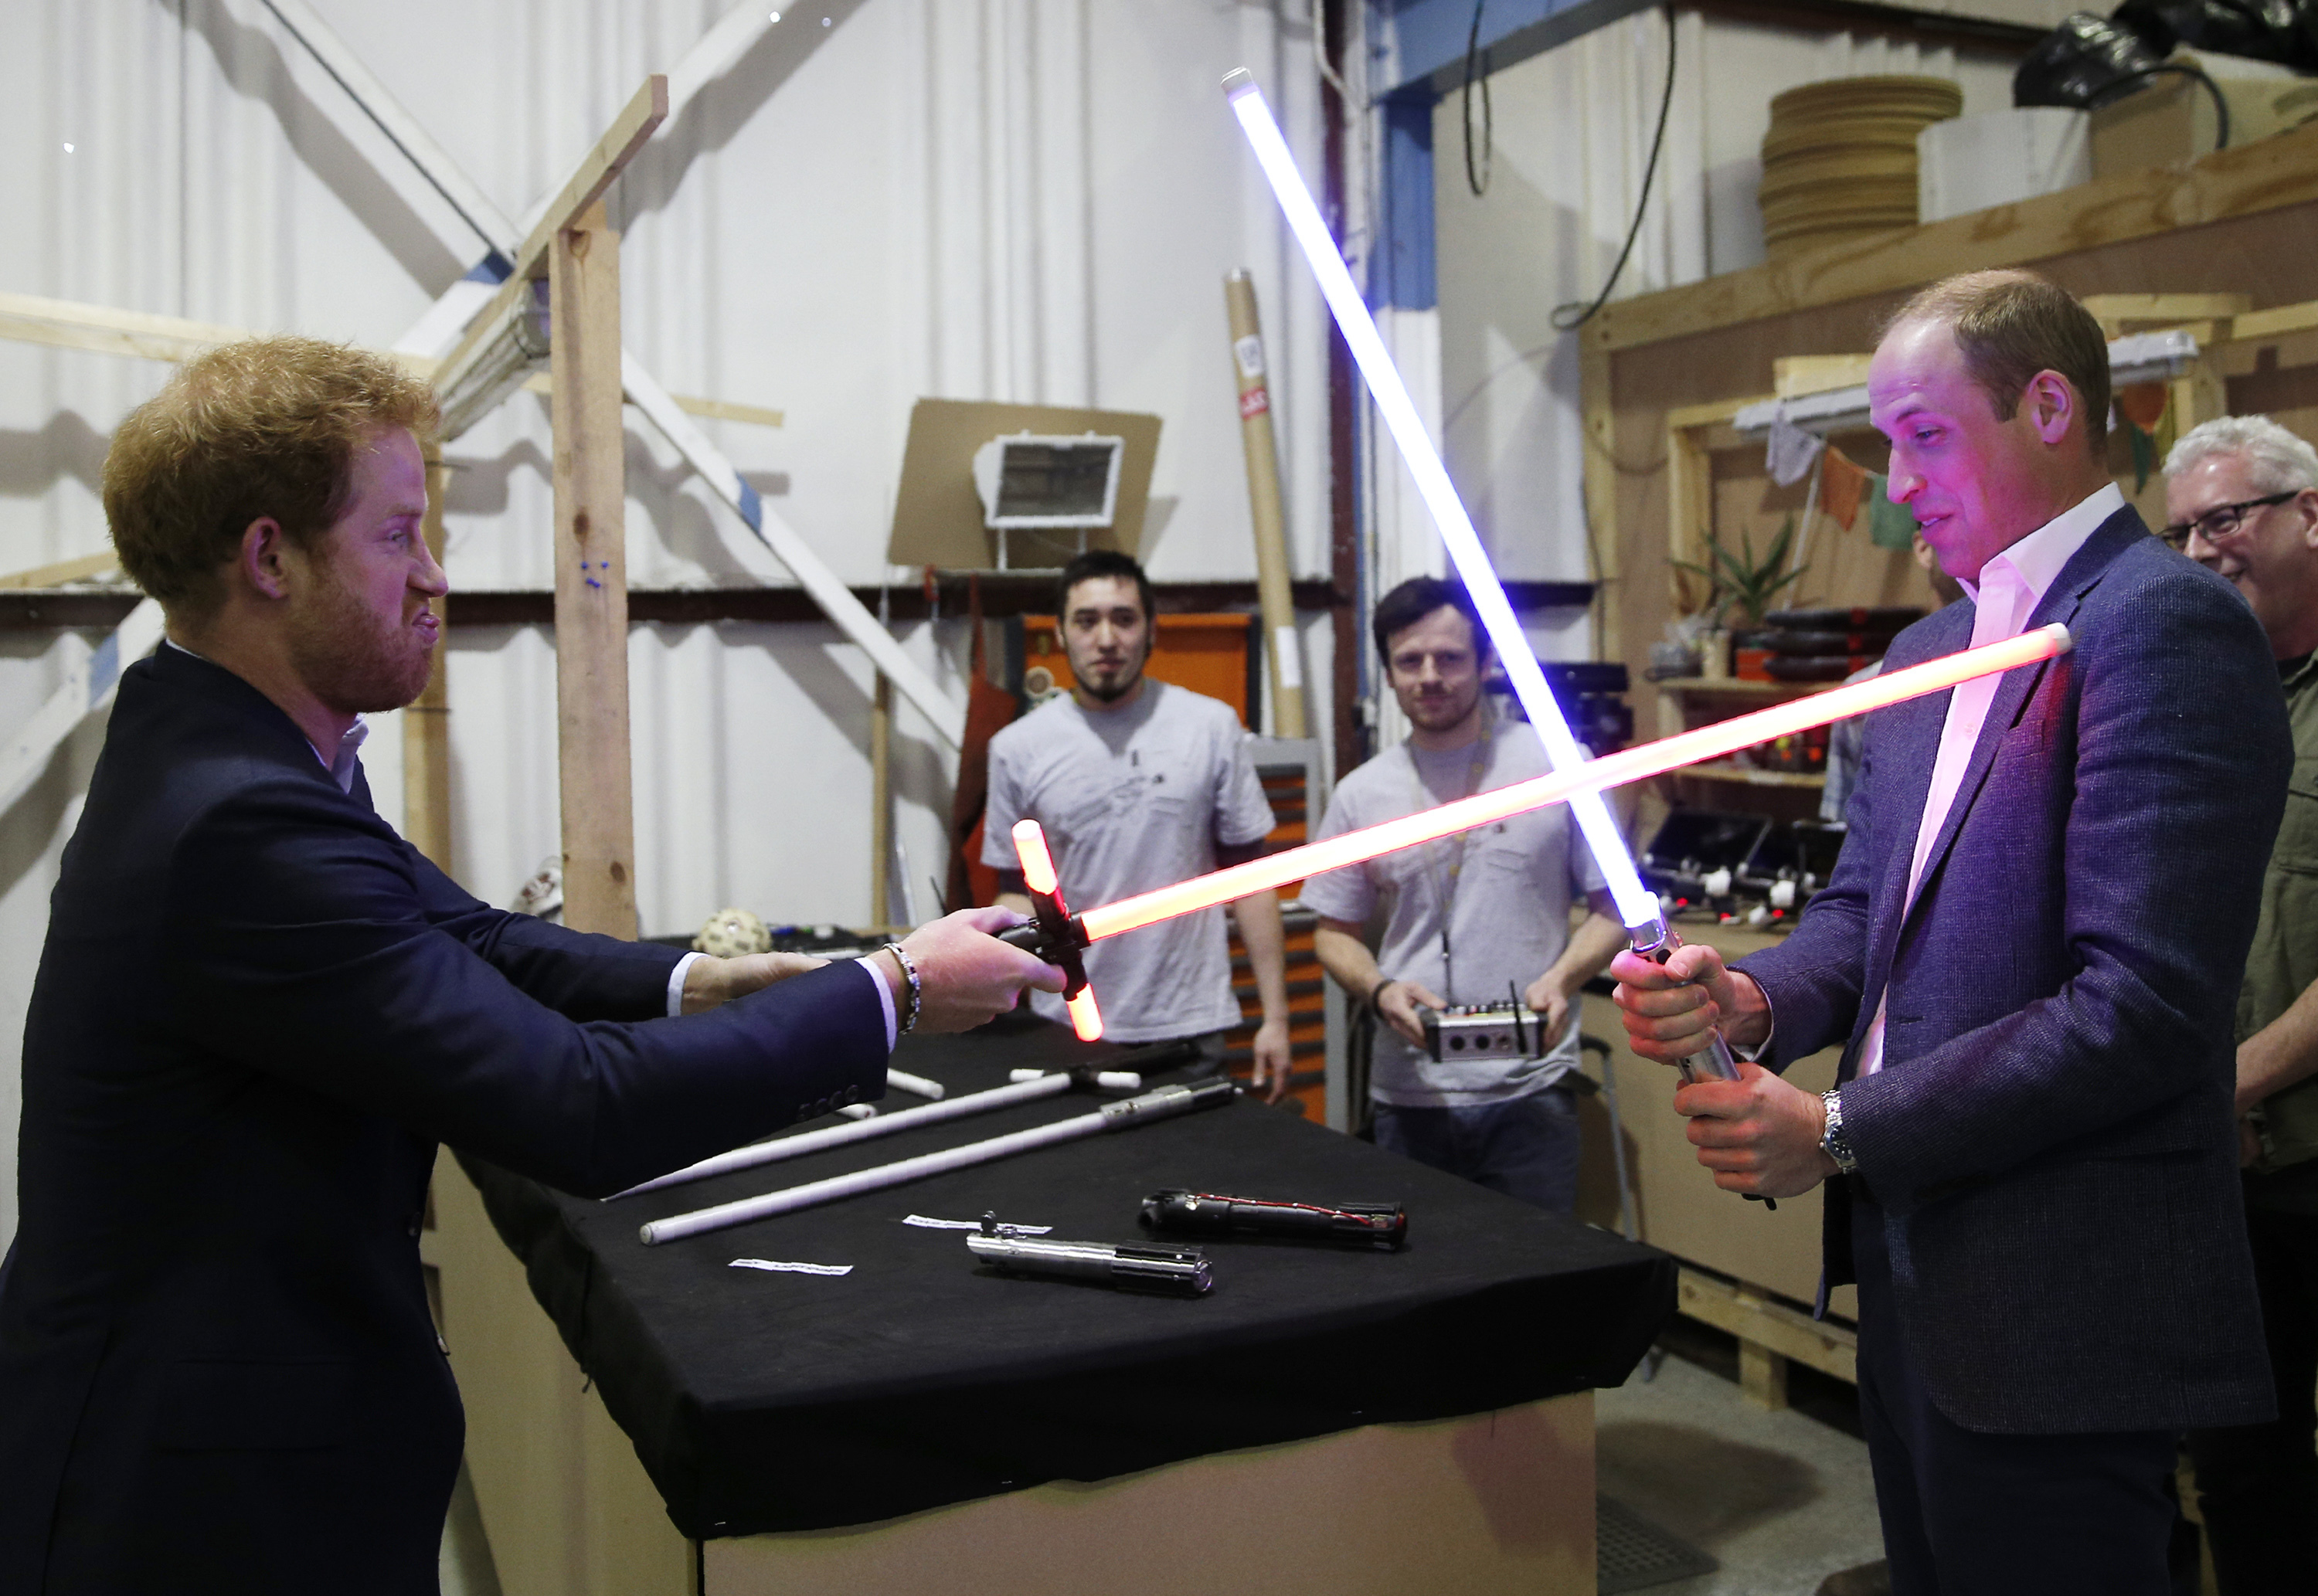 Prince Harry has a lightsaber showdown with Prince William